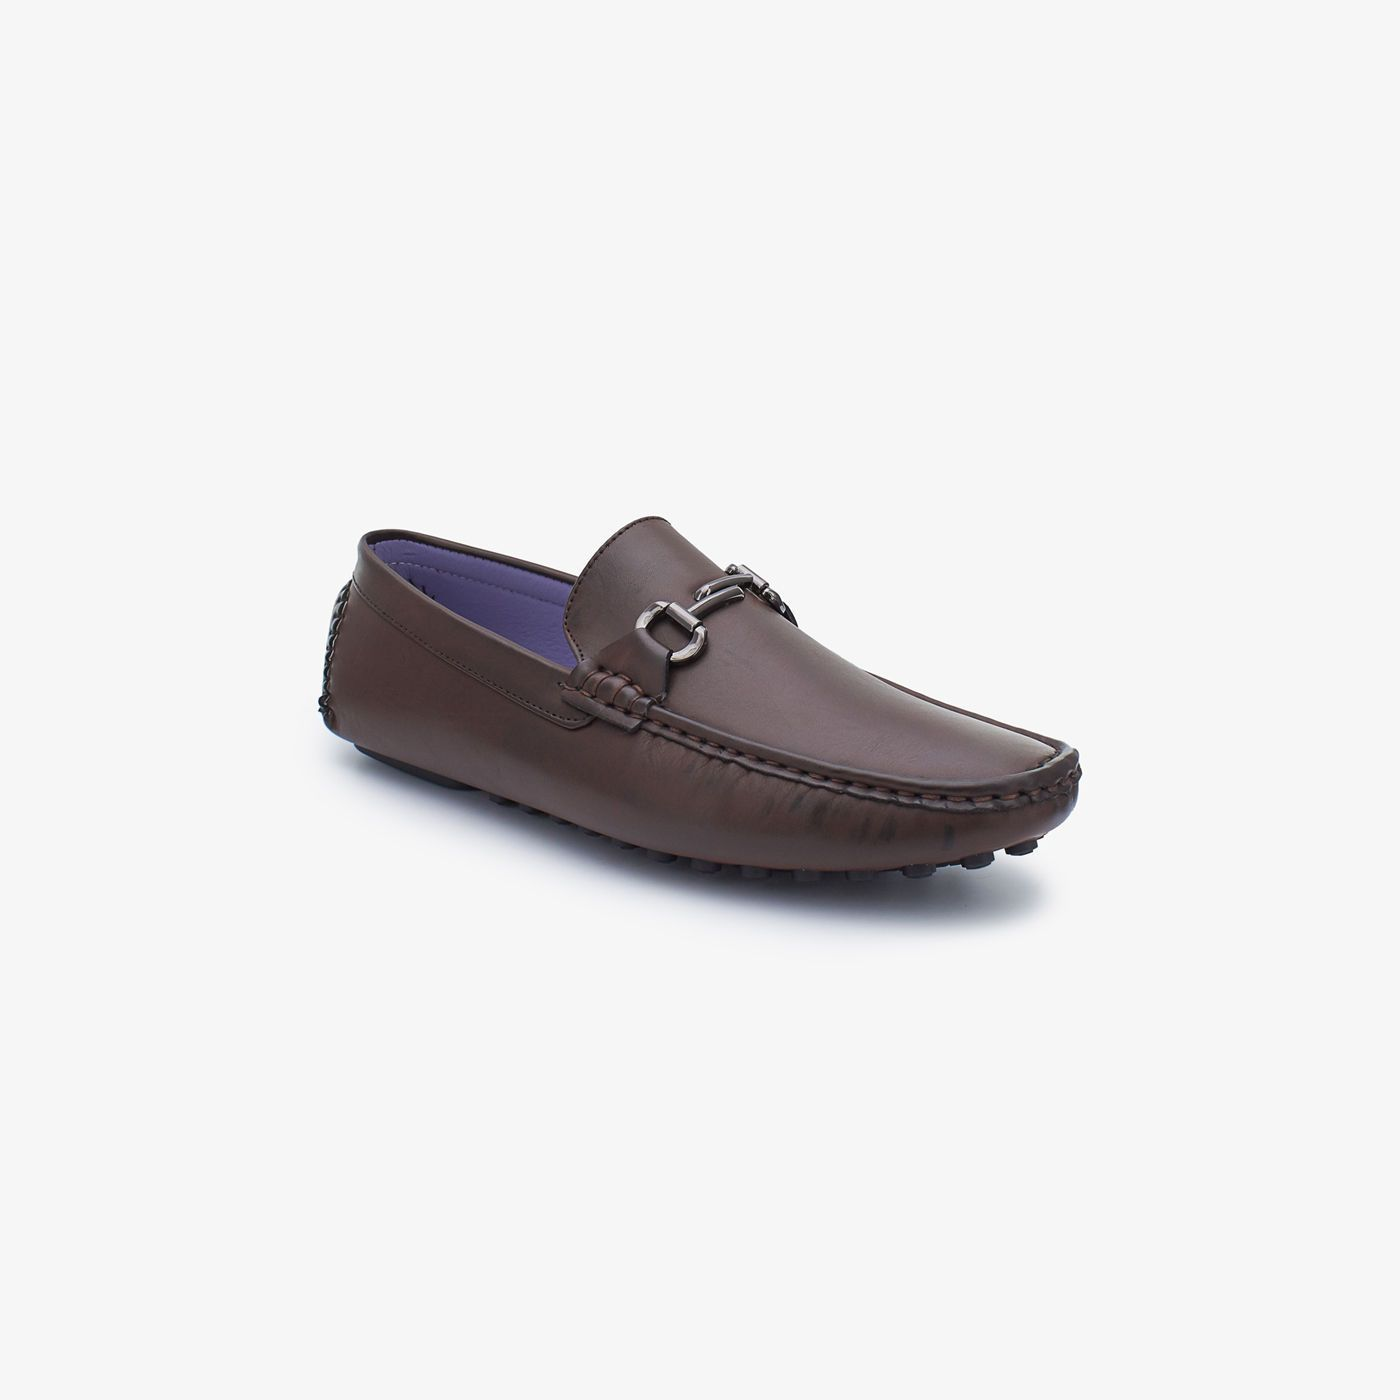 Mettalic Buckled Loafers